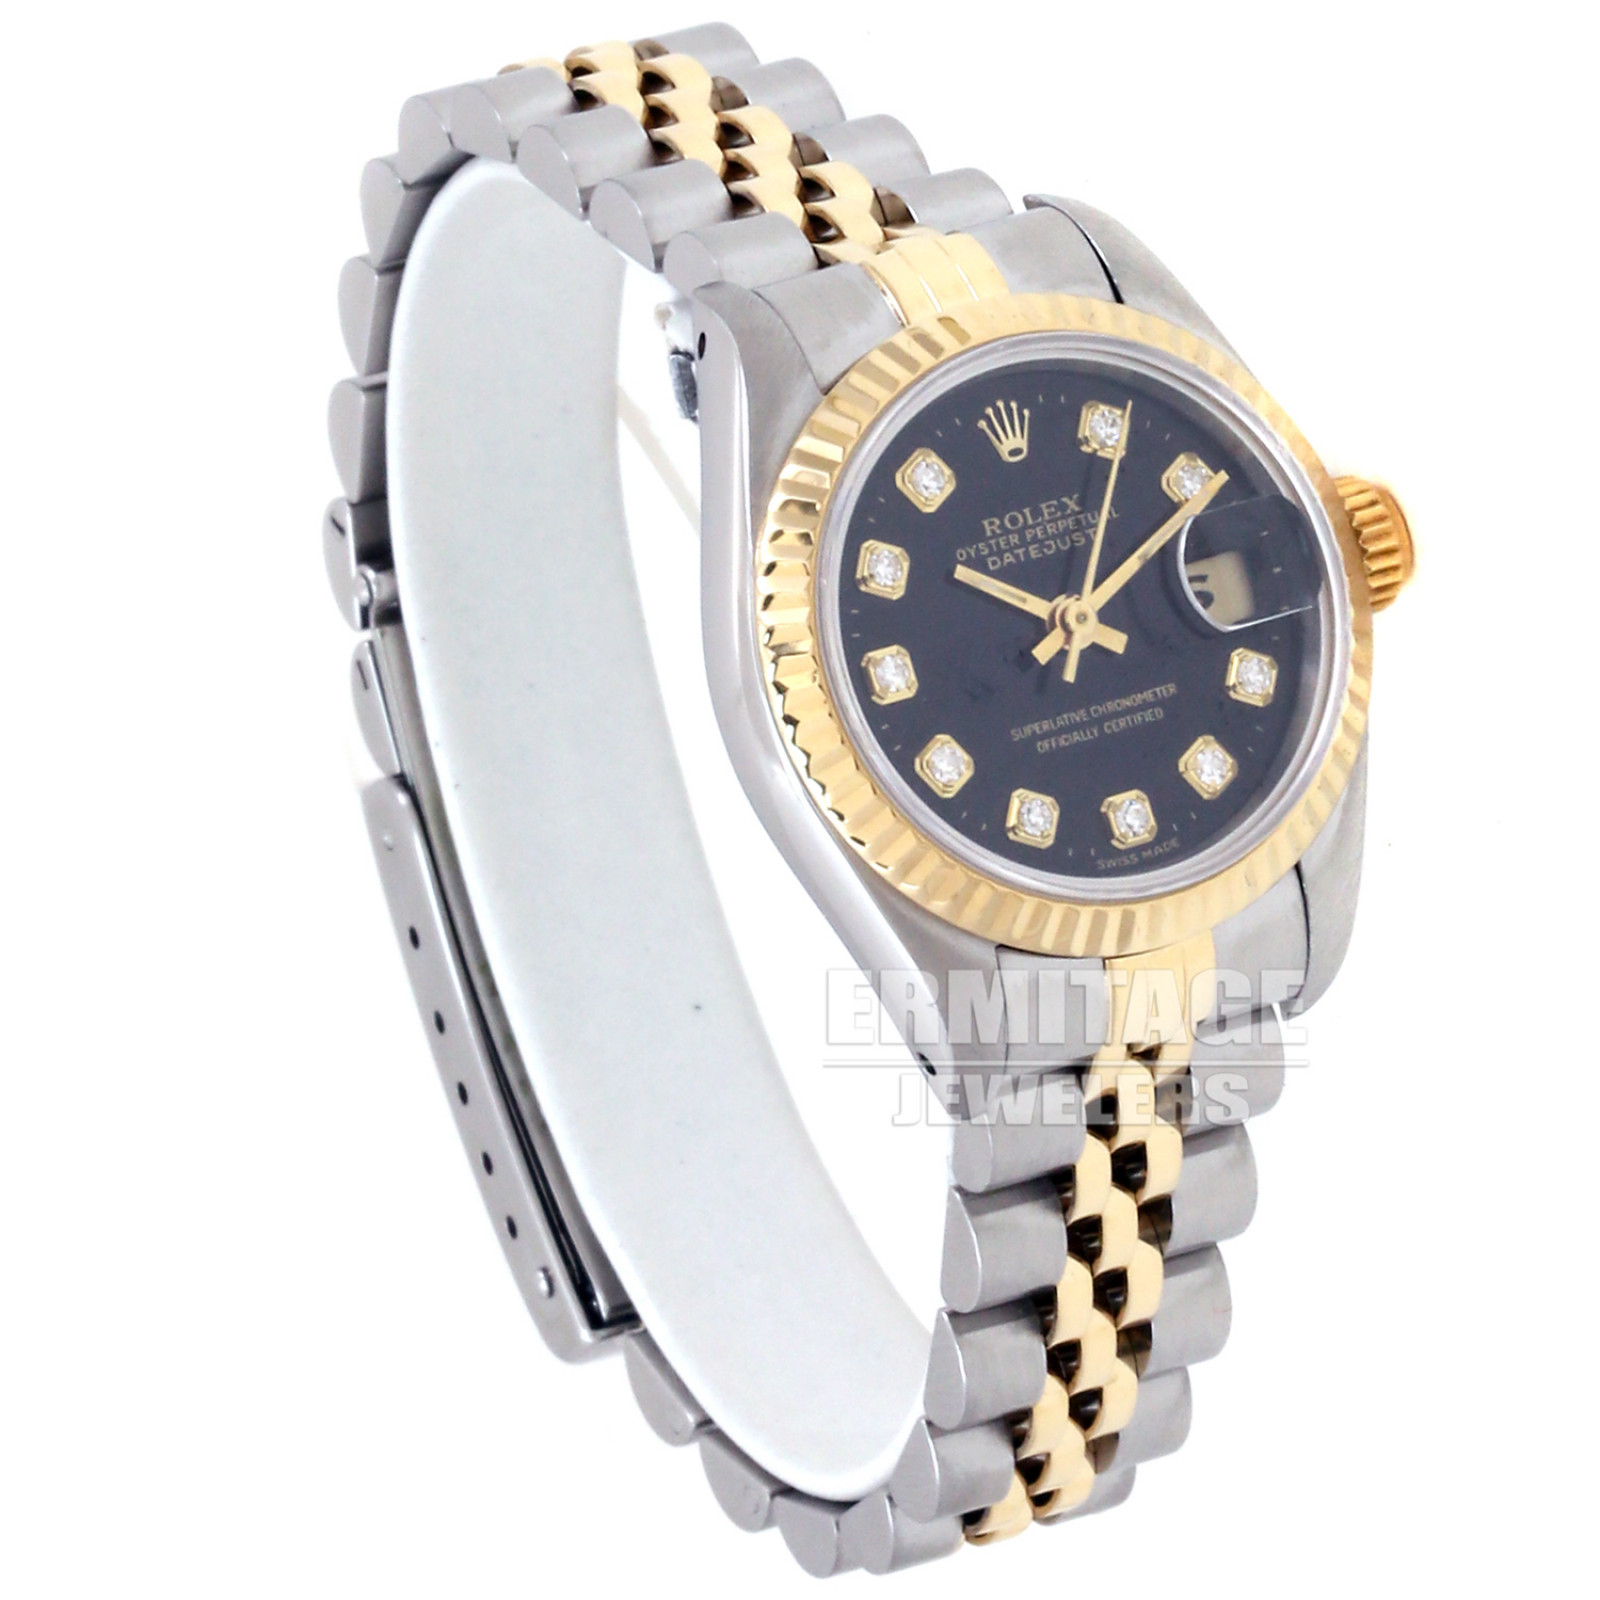 Pre-Owned Rolex Datejust 69173 with Black Dial